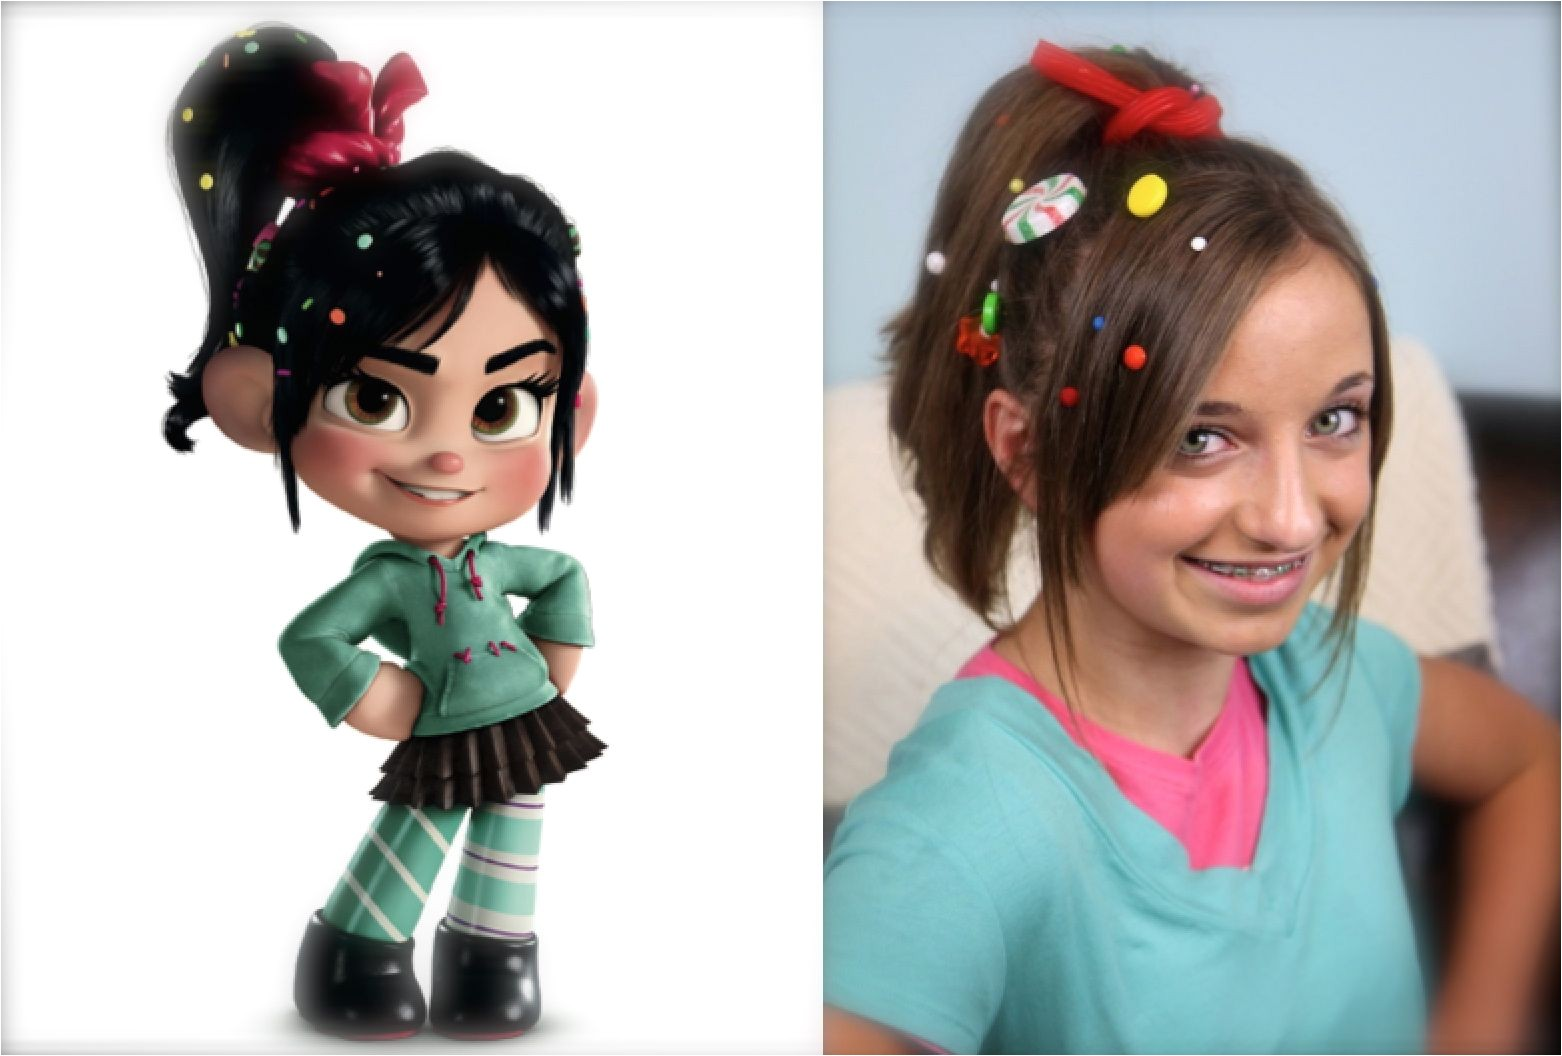 Cute Hairstyles for 10 Year Old Girls top 10 Cute Haircuts for 11 Year Olds Girls